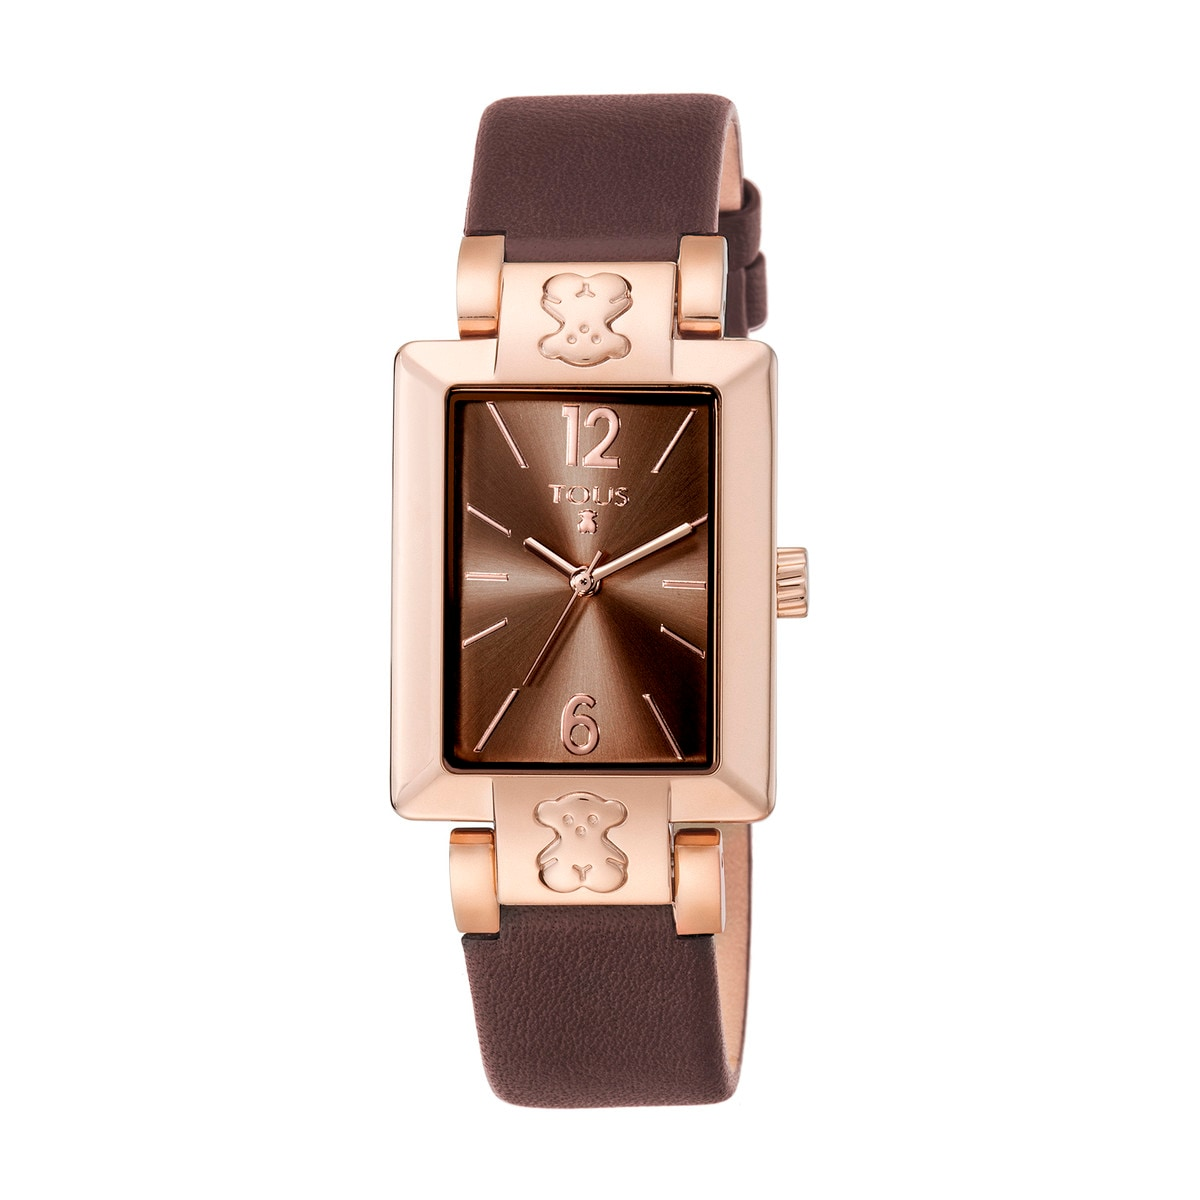 Pink IP Steel Plate SQ Watch with brown Leather strap